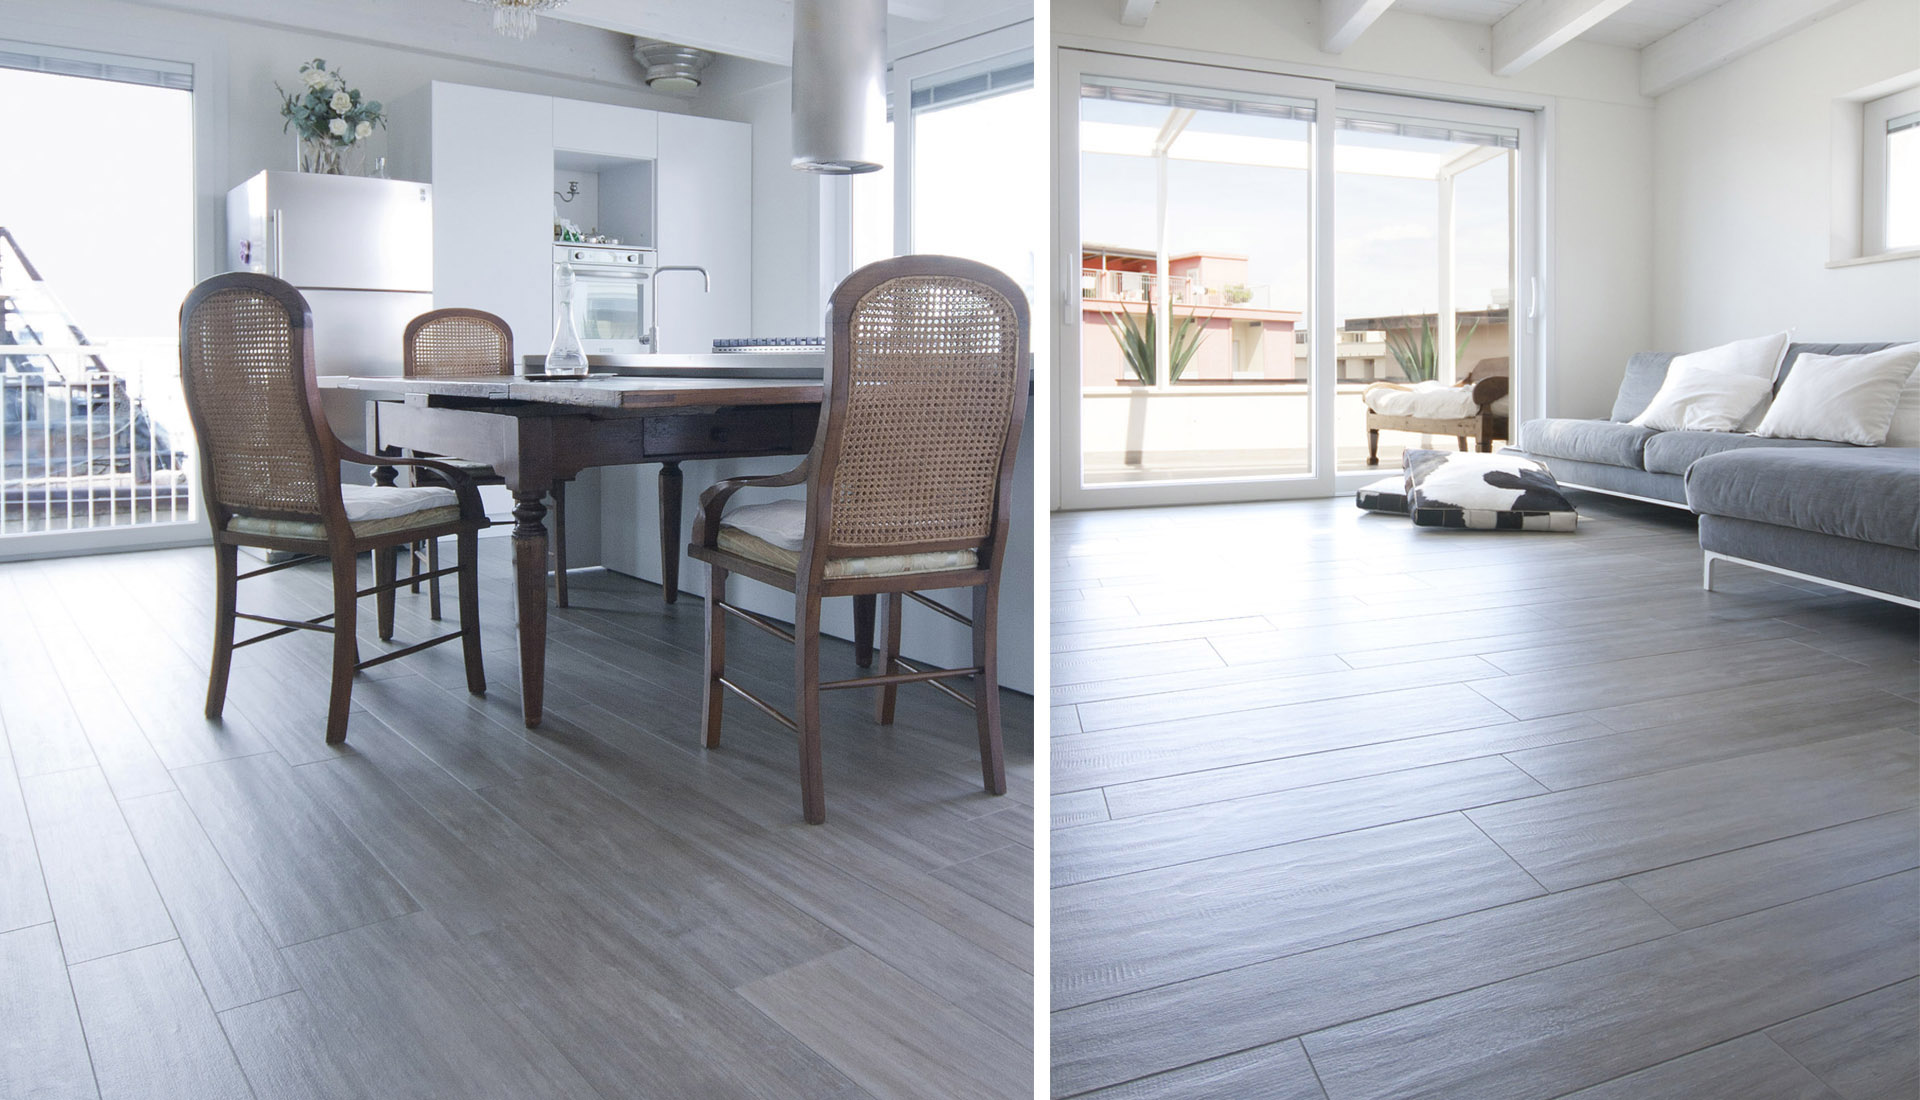 Appartamento rivestimenti pavimenti Iris ceramica Active Clean Air & Antibacterial Ceramic™